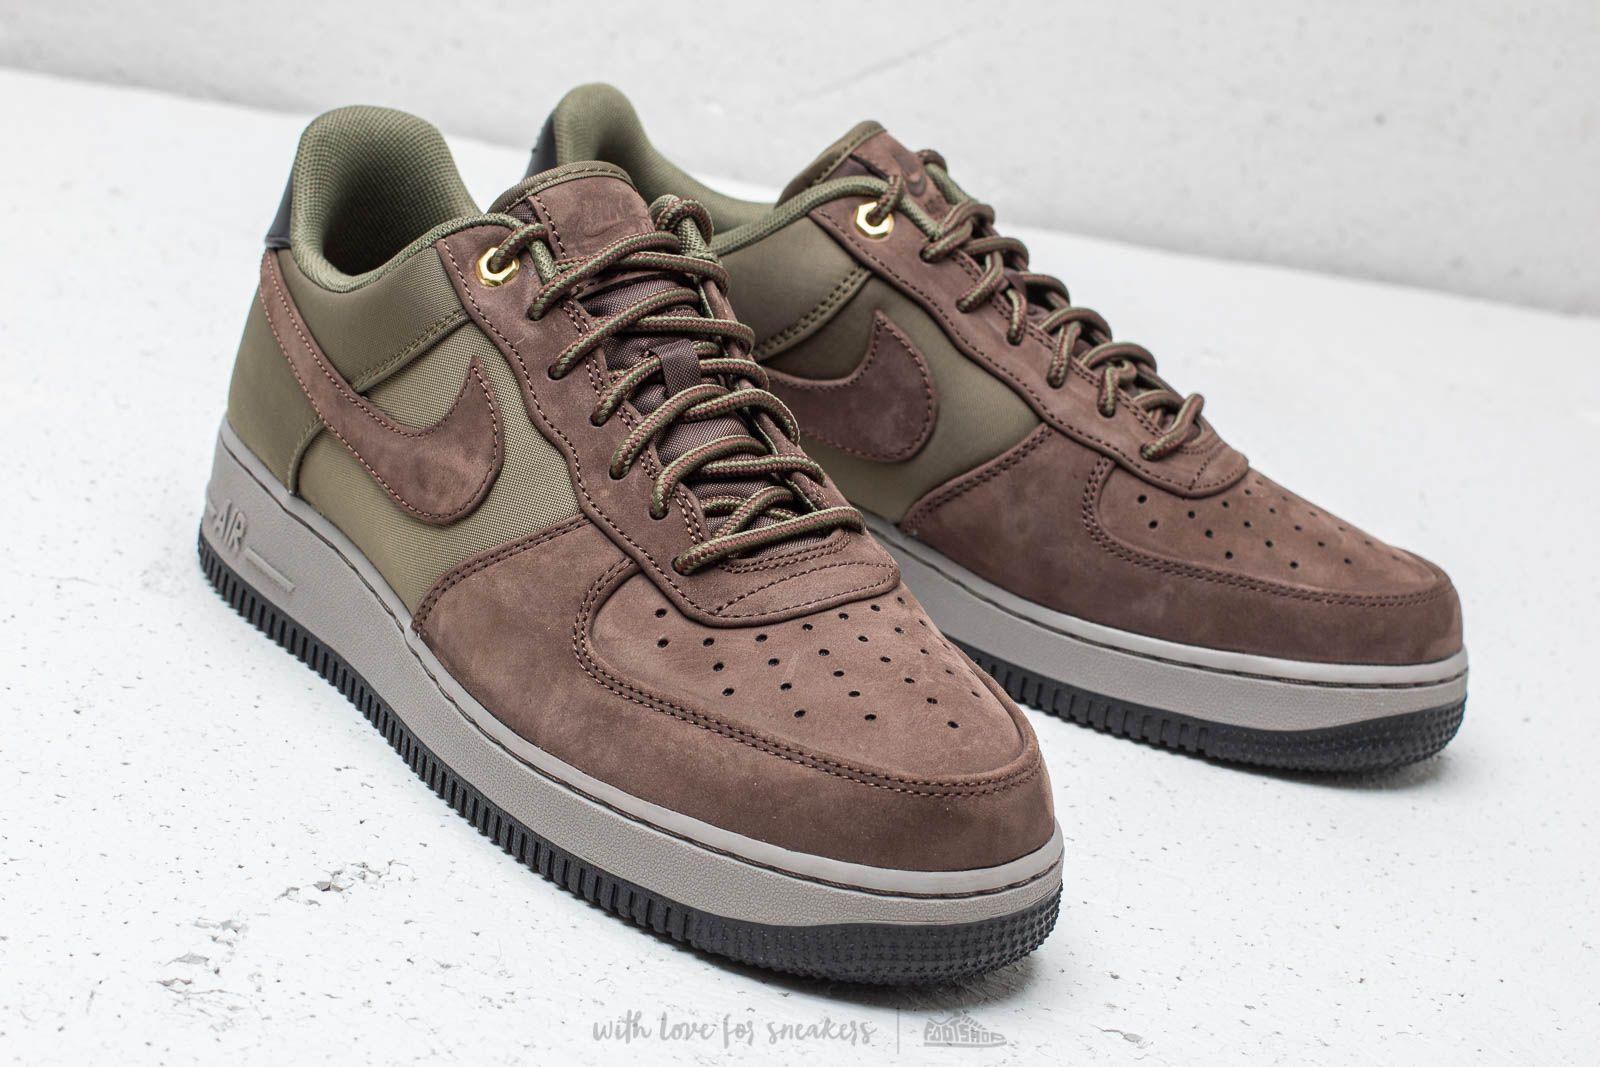 Lyst - Nike Air Force 1 ́07 Premier Baroque Brown  Army Olive in ... 27c73d427